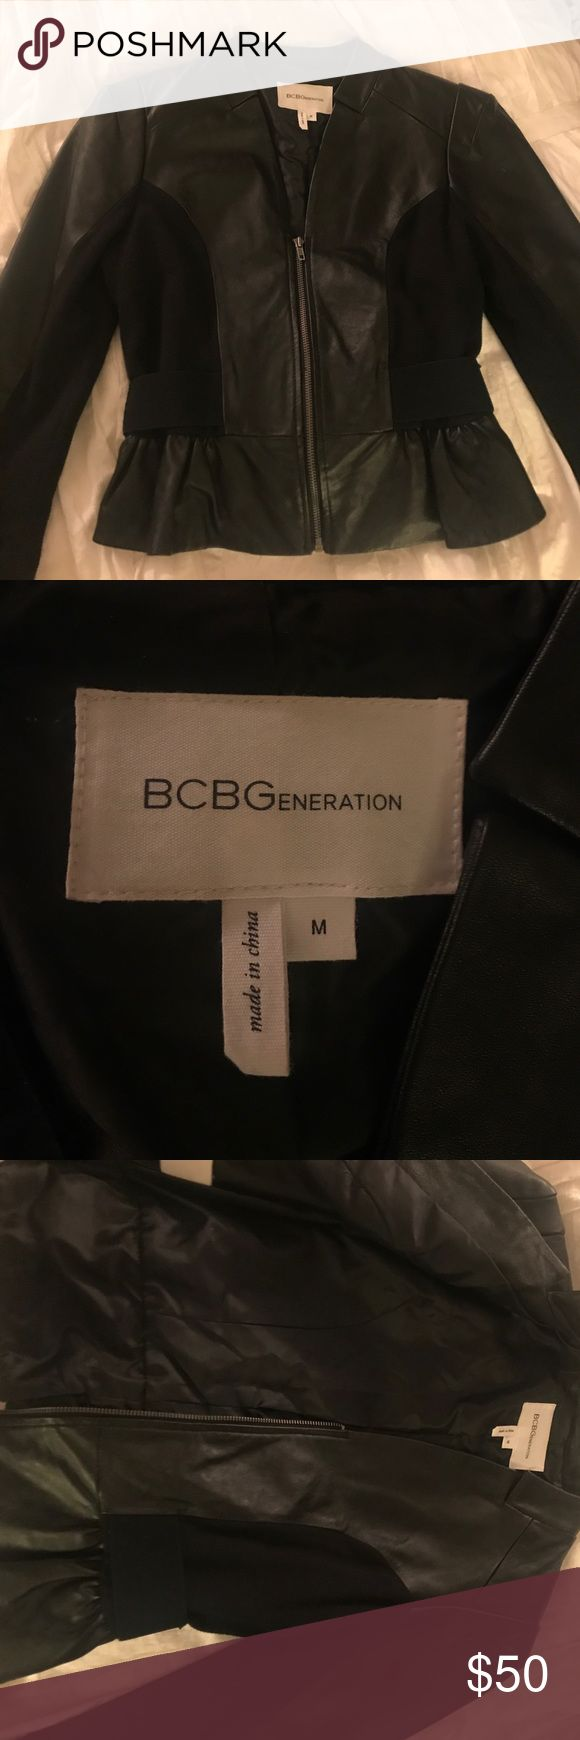 BCBGeneration Jacket medium size BCBGen jacket. Never worn. Was a gift. Has a flattering fit and stops at the top of hips in length . Little bigger in the shoulders! Cute for going out or in the work place! BCBGeneration Jackets & Coats